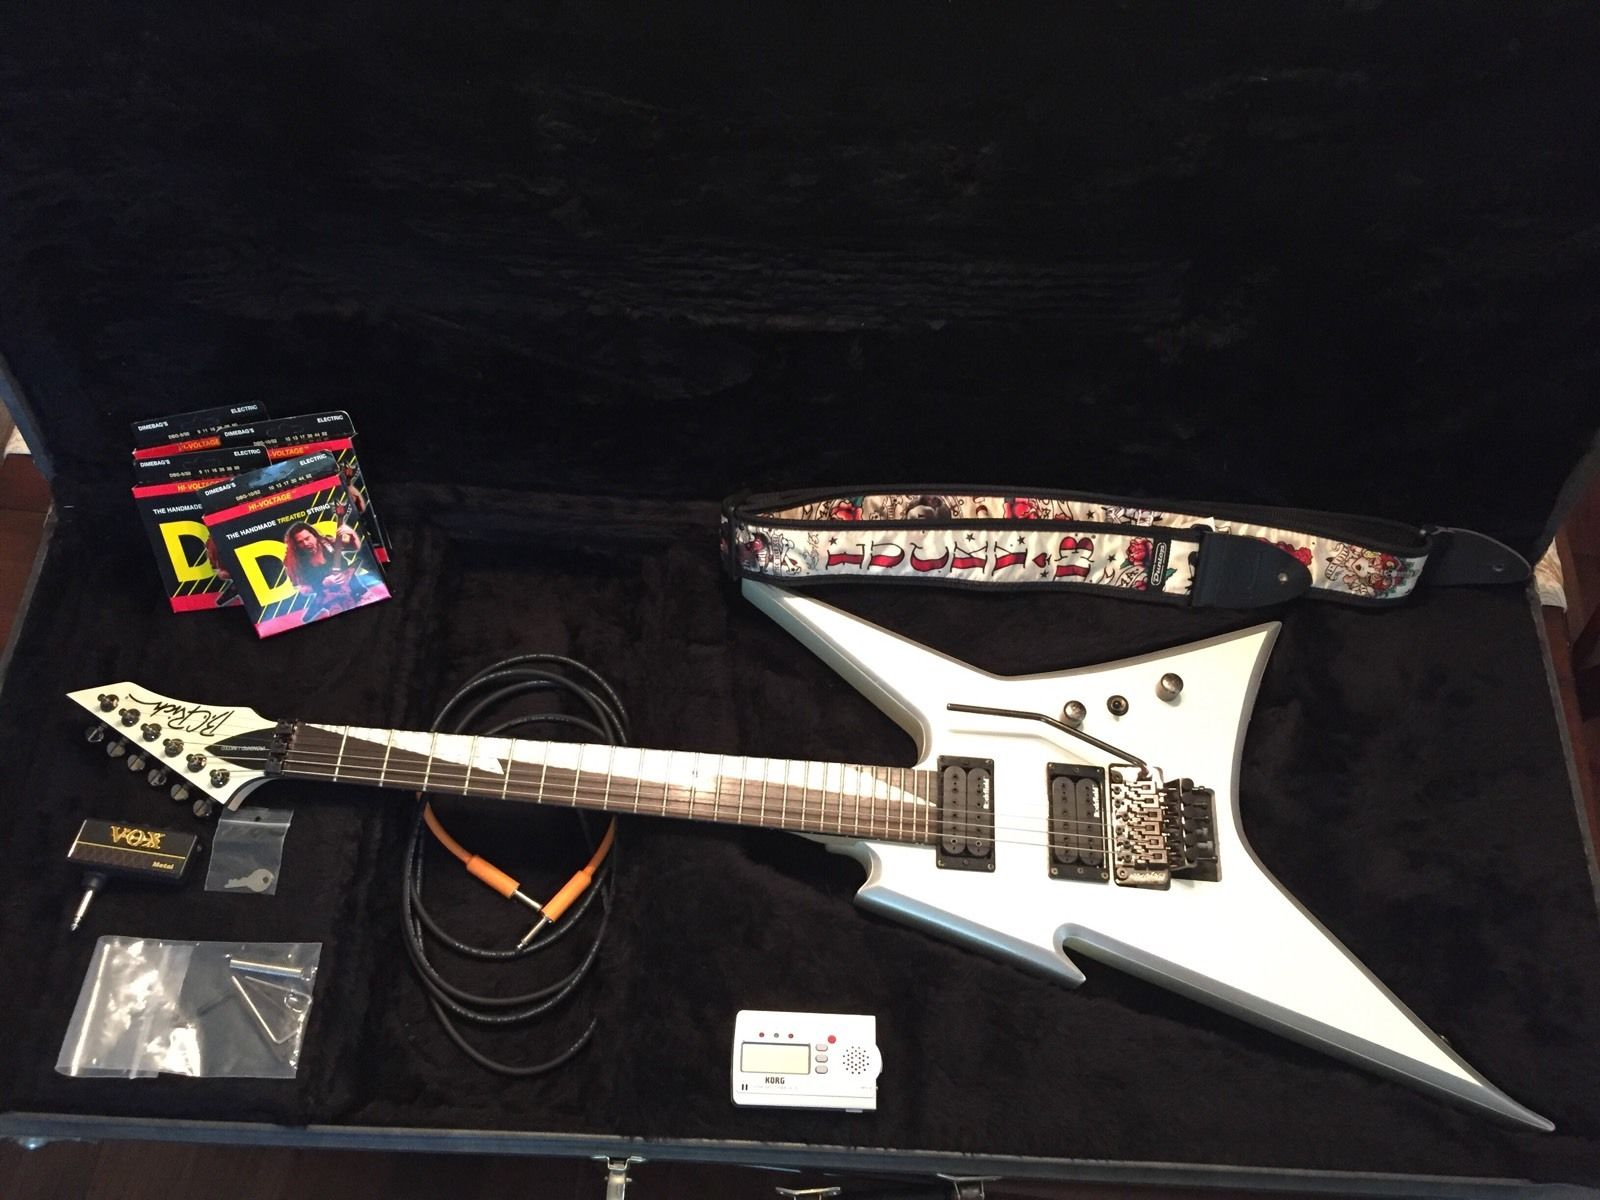 BC rich ironbird limited edition | guitar of china